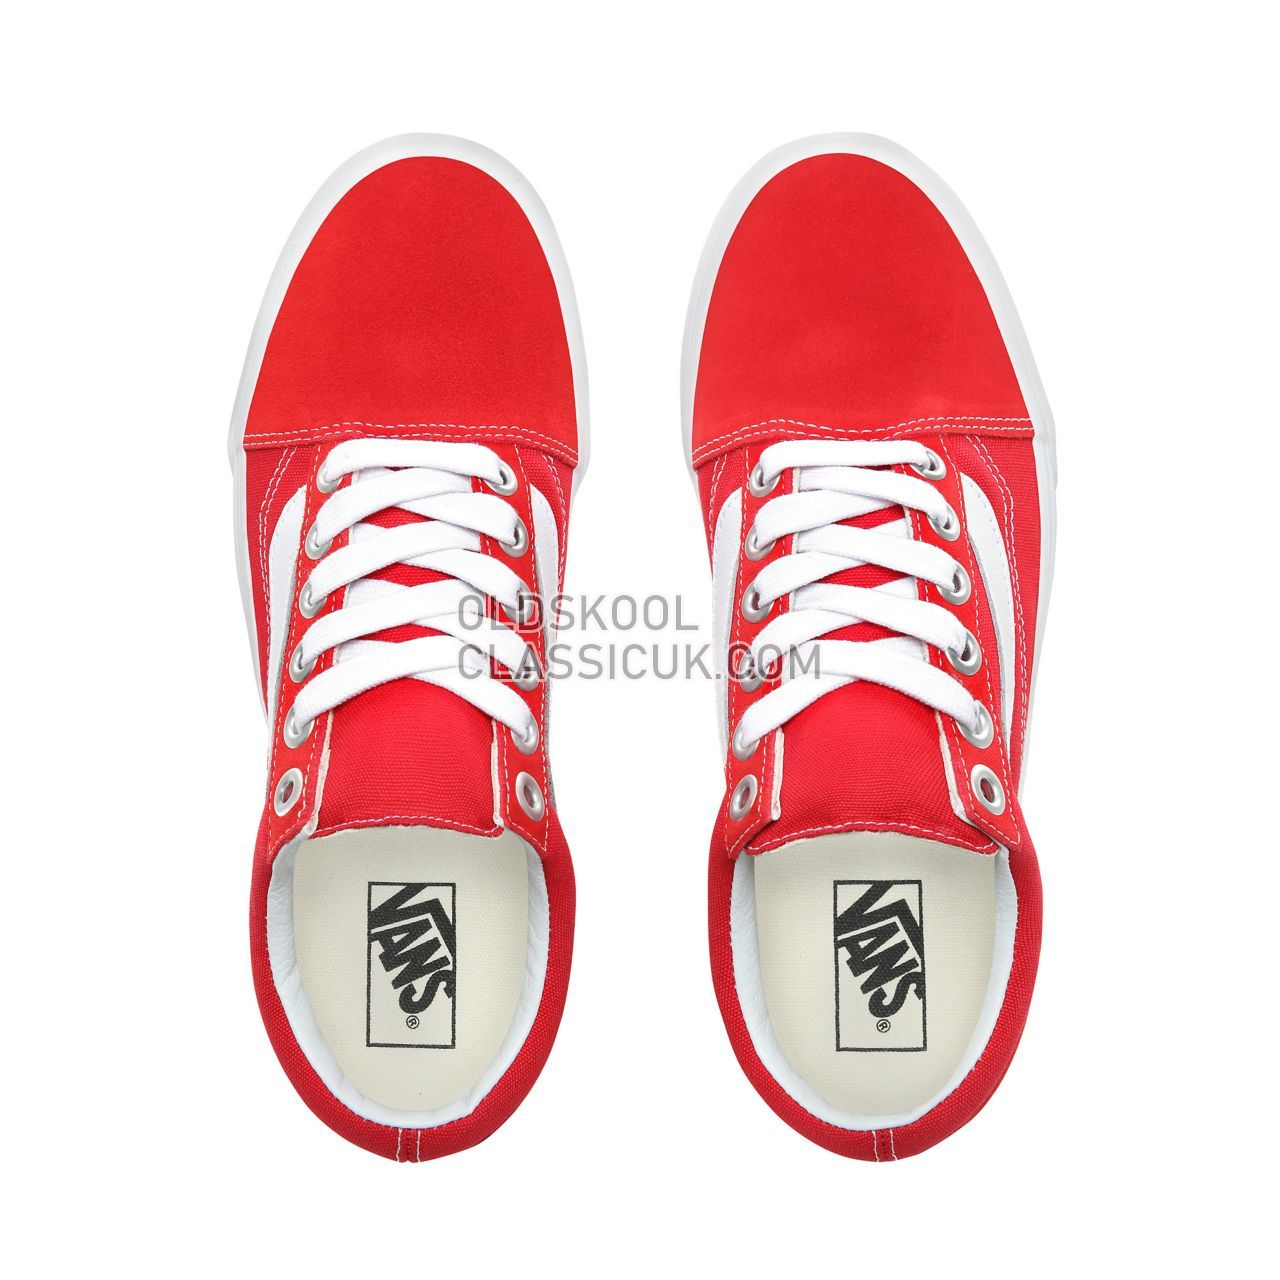 Vans Old Skool OS Sneakers Mens Womens Unisex Racing Red/True White VN0A3WLYJV6 Shoes